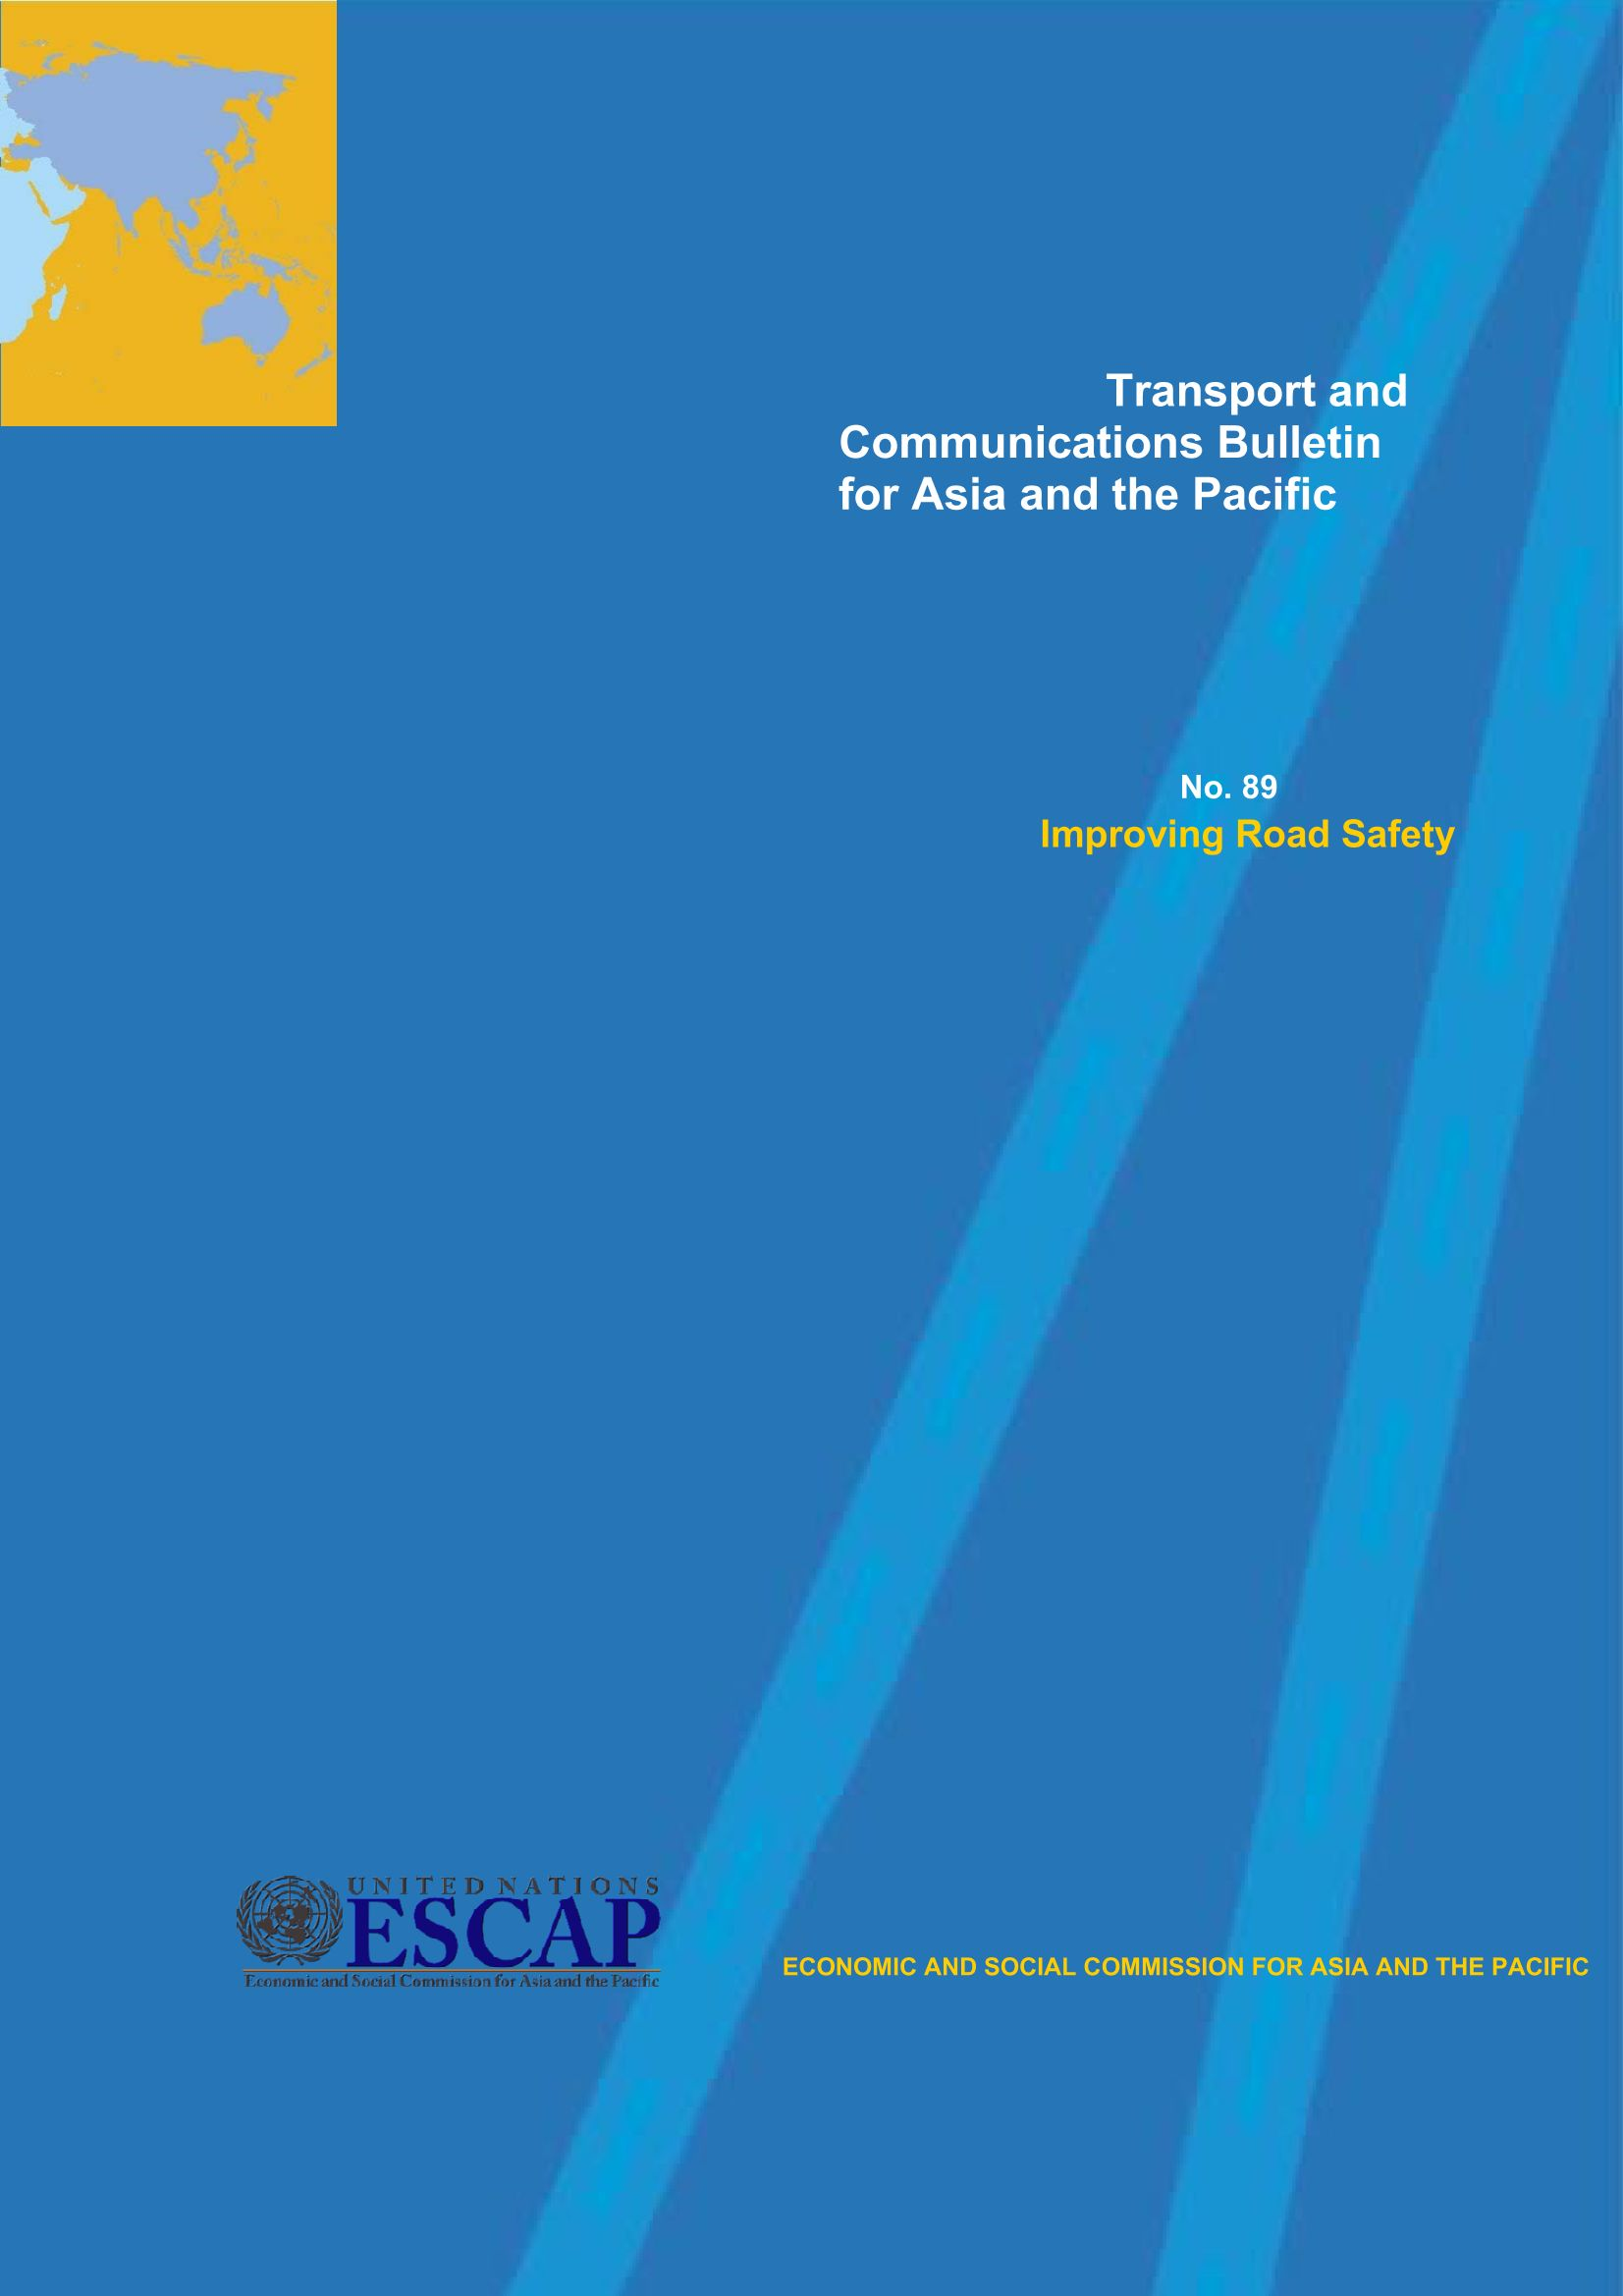 Transport and Communications Bulletin for Asia and the Pacific 89: Improving Road Safety